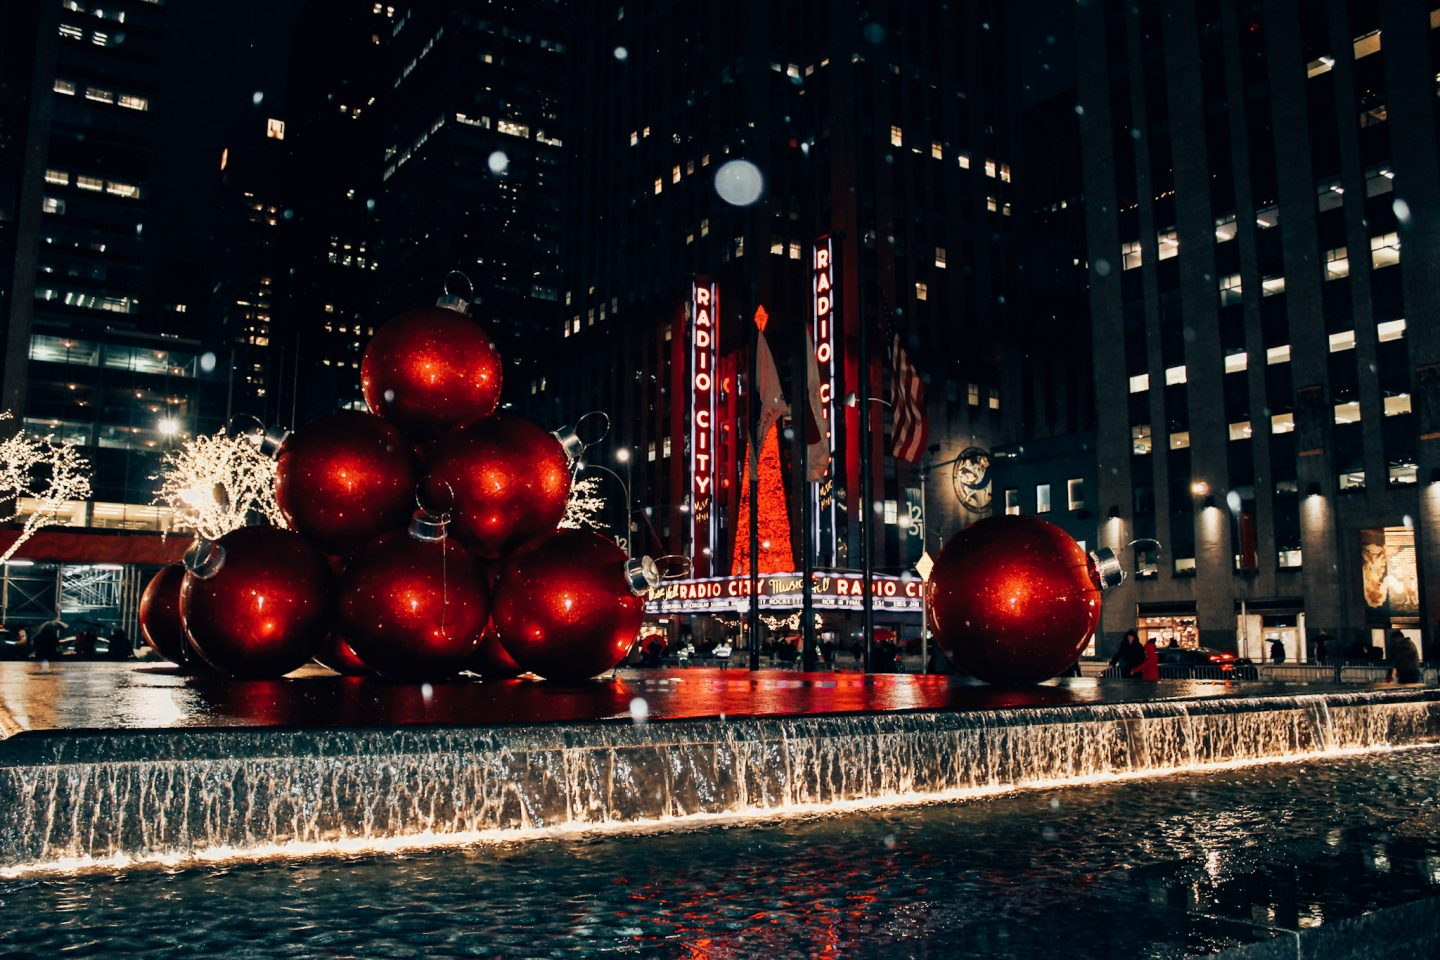 A view of the ornaments and Radio City Music Hall in NYC around the holidays!